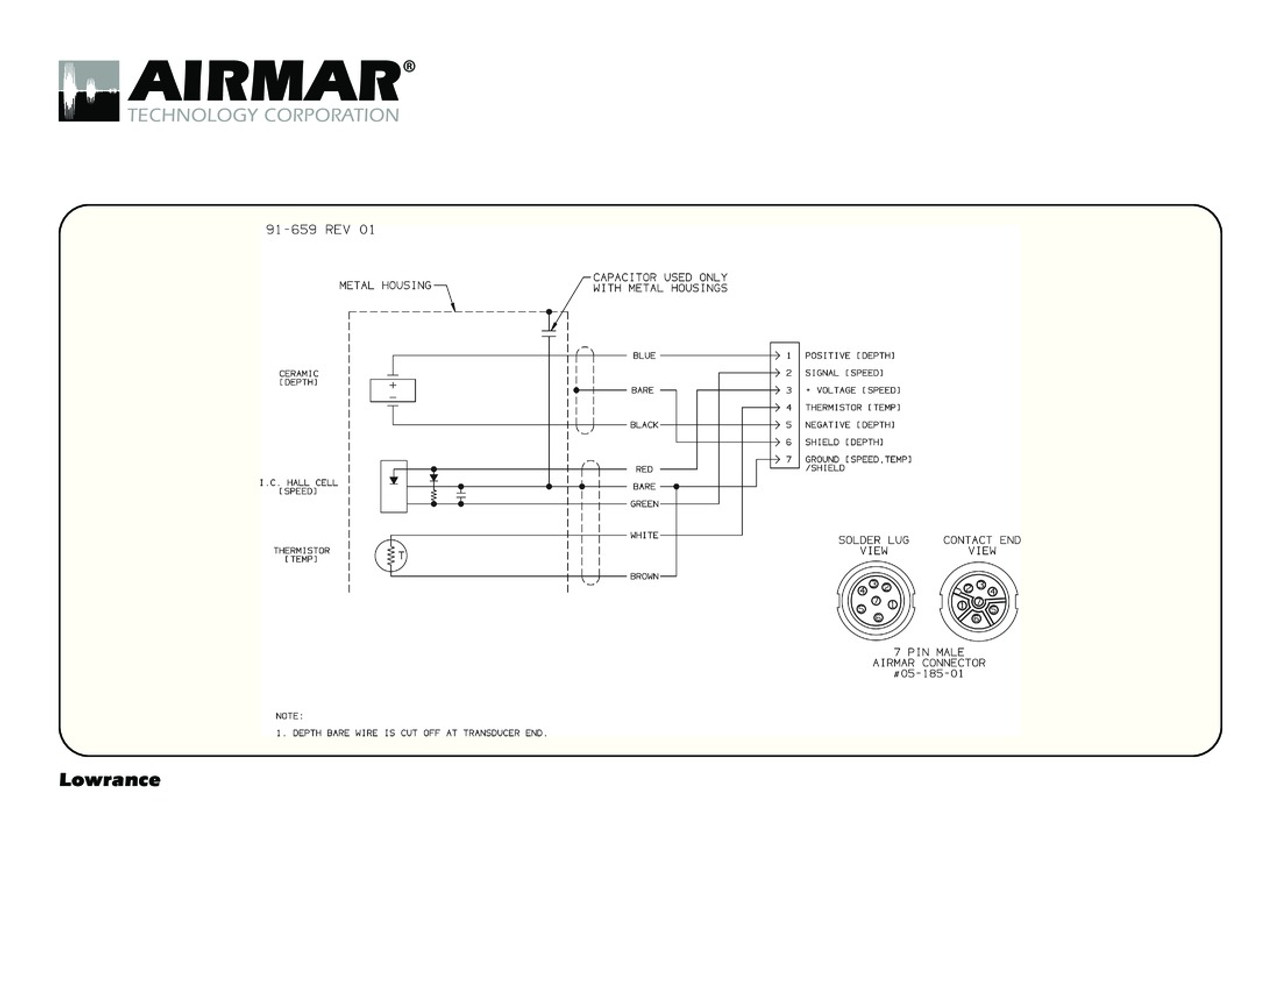 small resolution of airmar wiring diagram lowrance 7 pin d s t blue bottle marinedepth